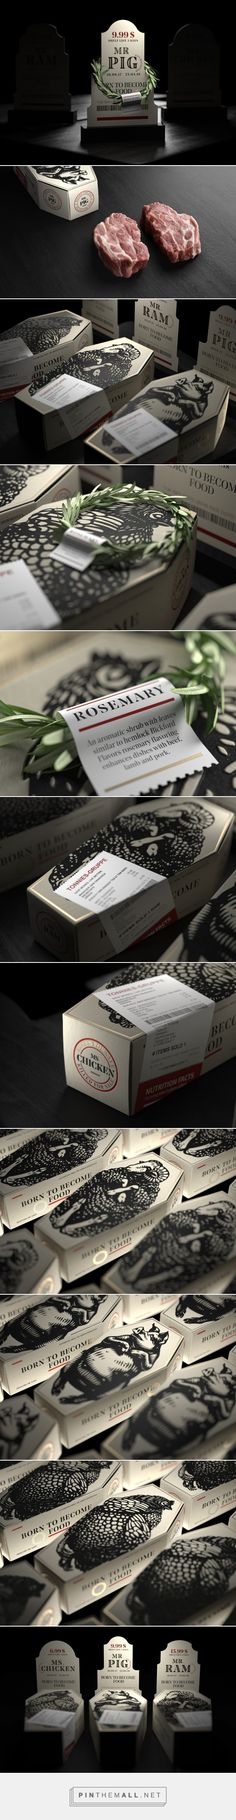 """Born to become food"" - R.I.P packaging design by Constantin Bolimond - https://www.packagingoftheworld.com/2018/03/rip.html"